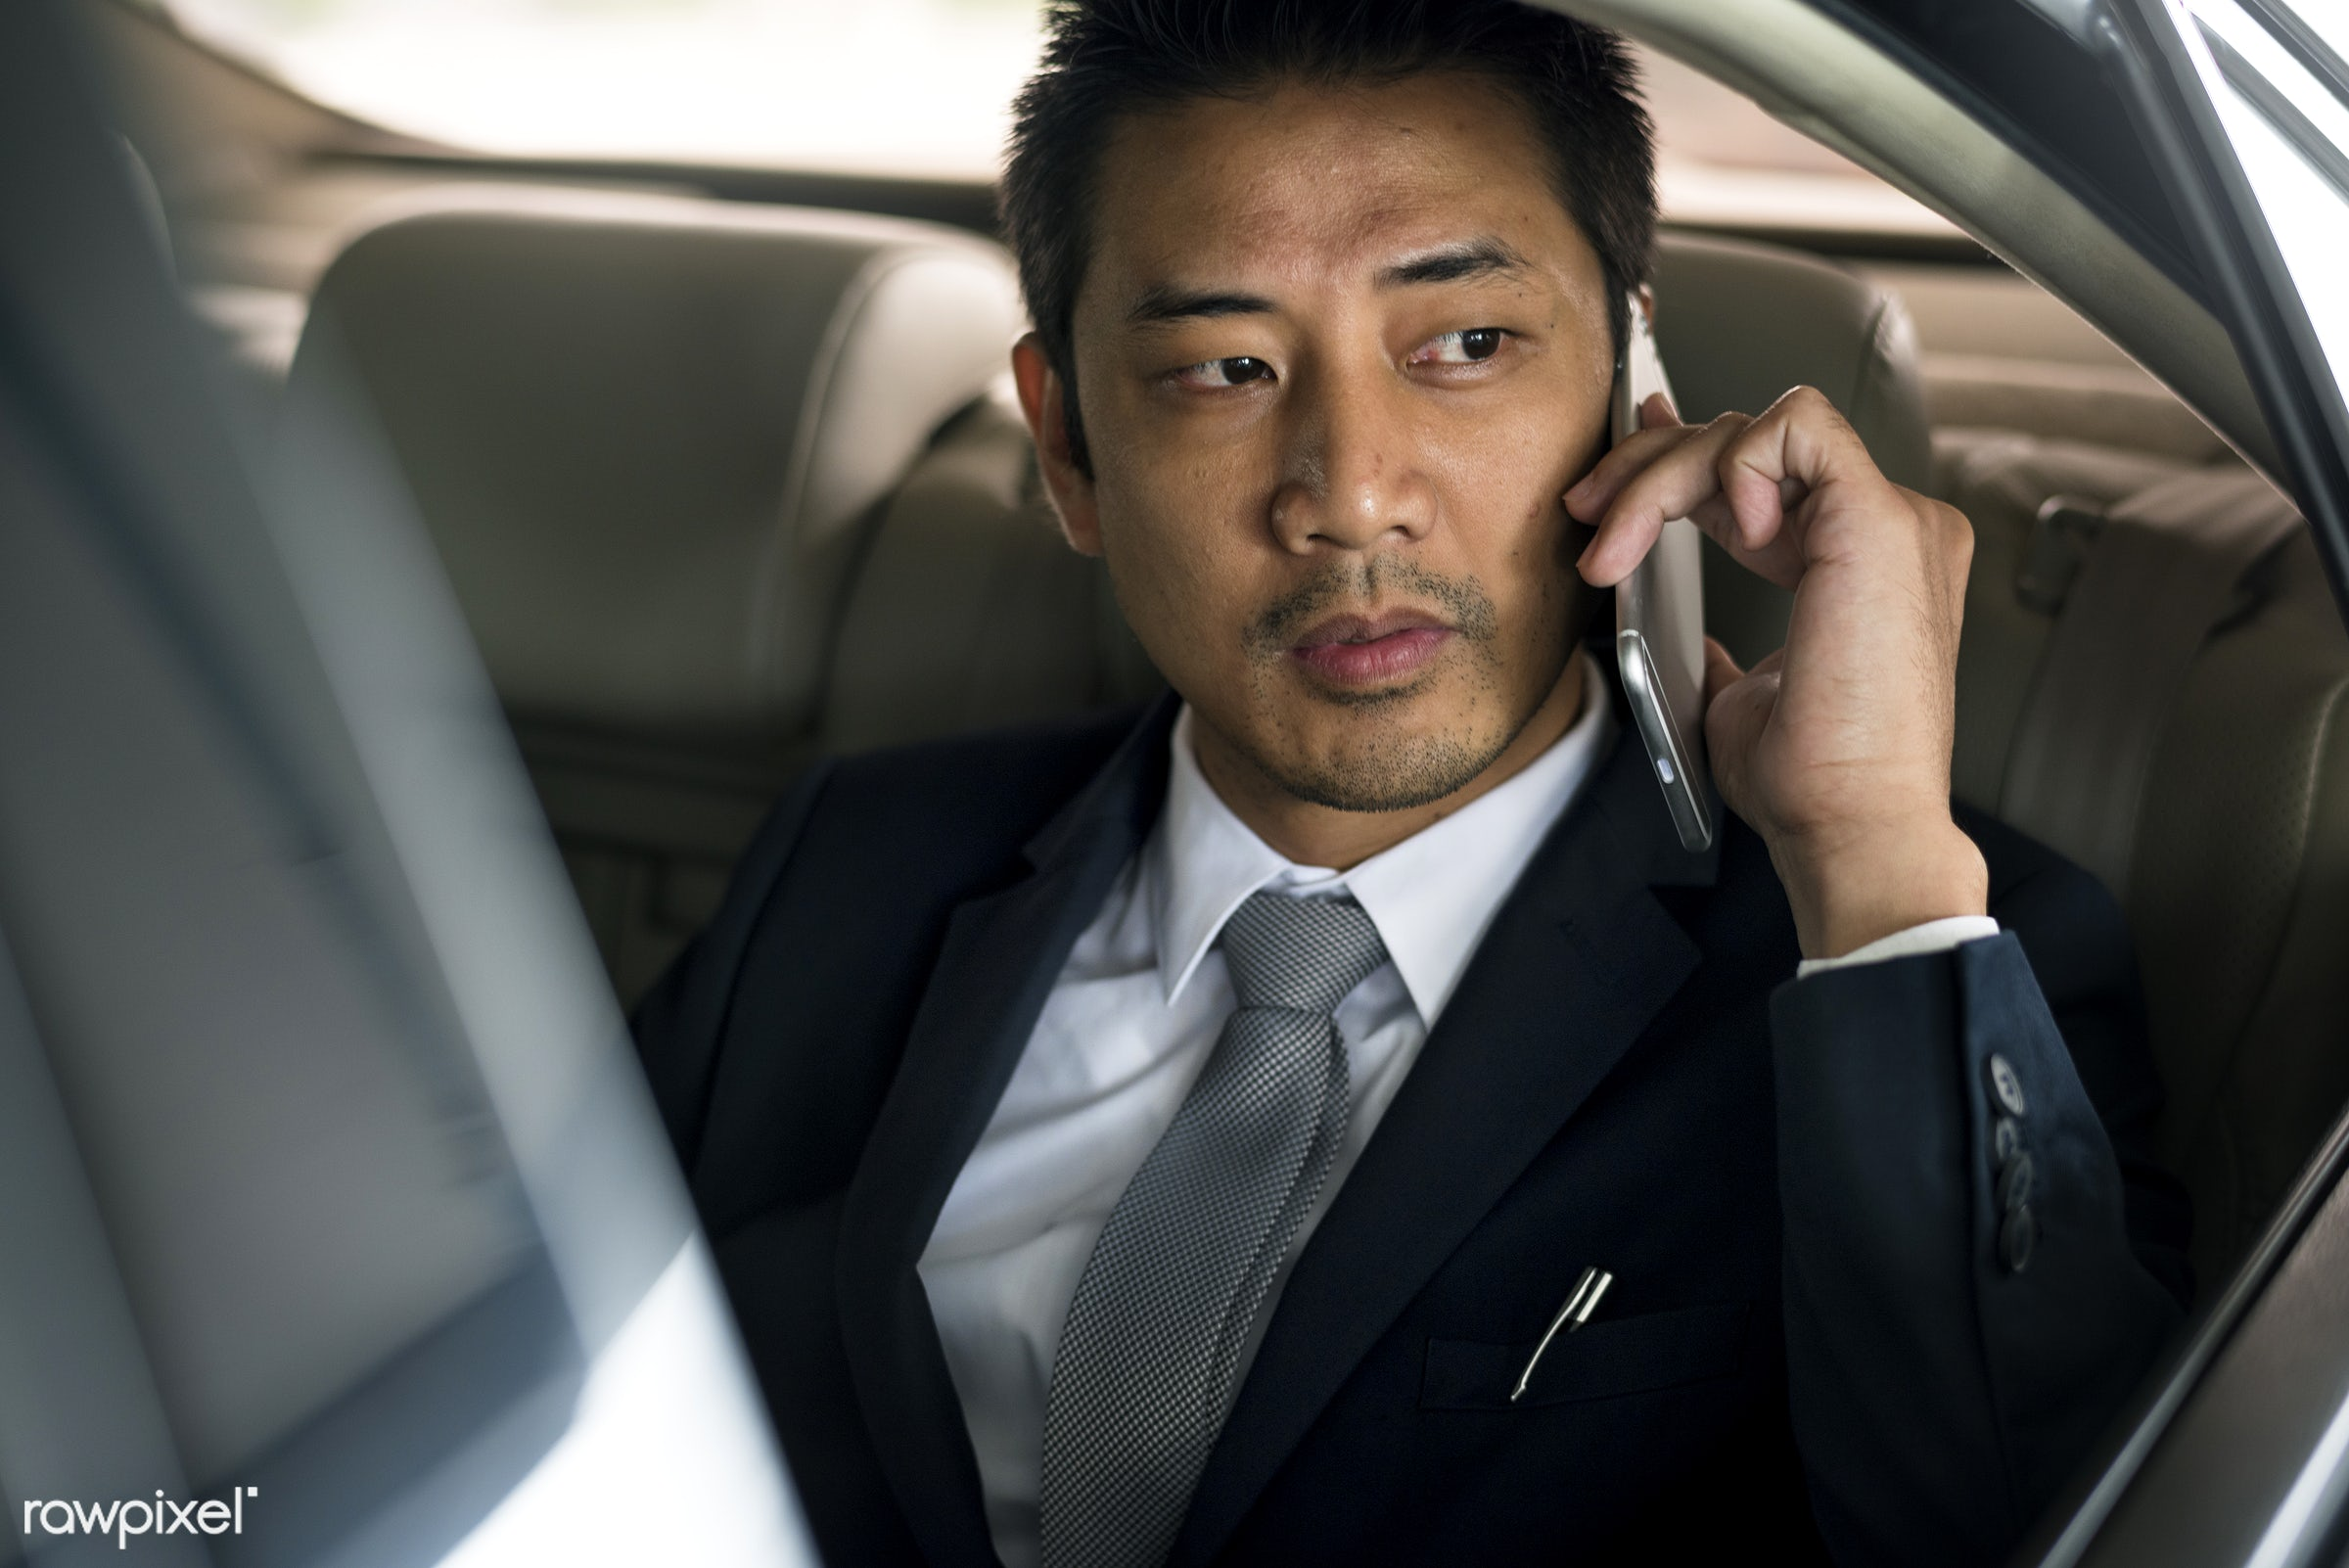 car, expression, call, face, phone, person, suit and tie, white collar worker, tie, vehicle, use, travel, transportation,...